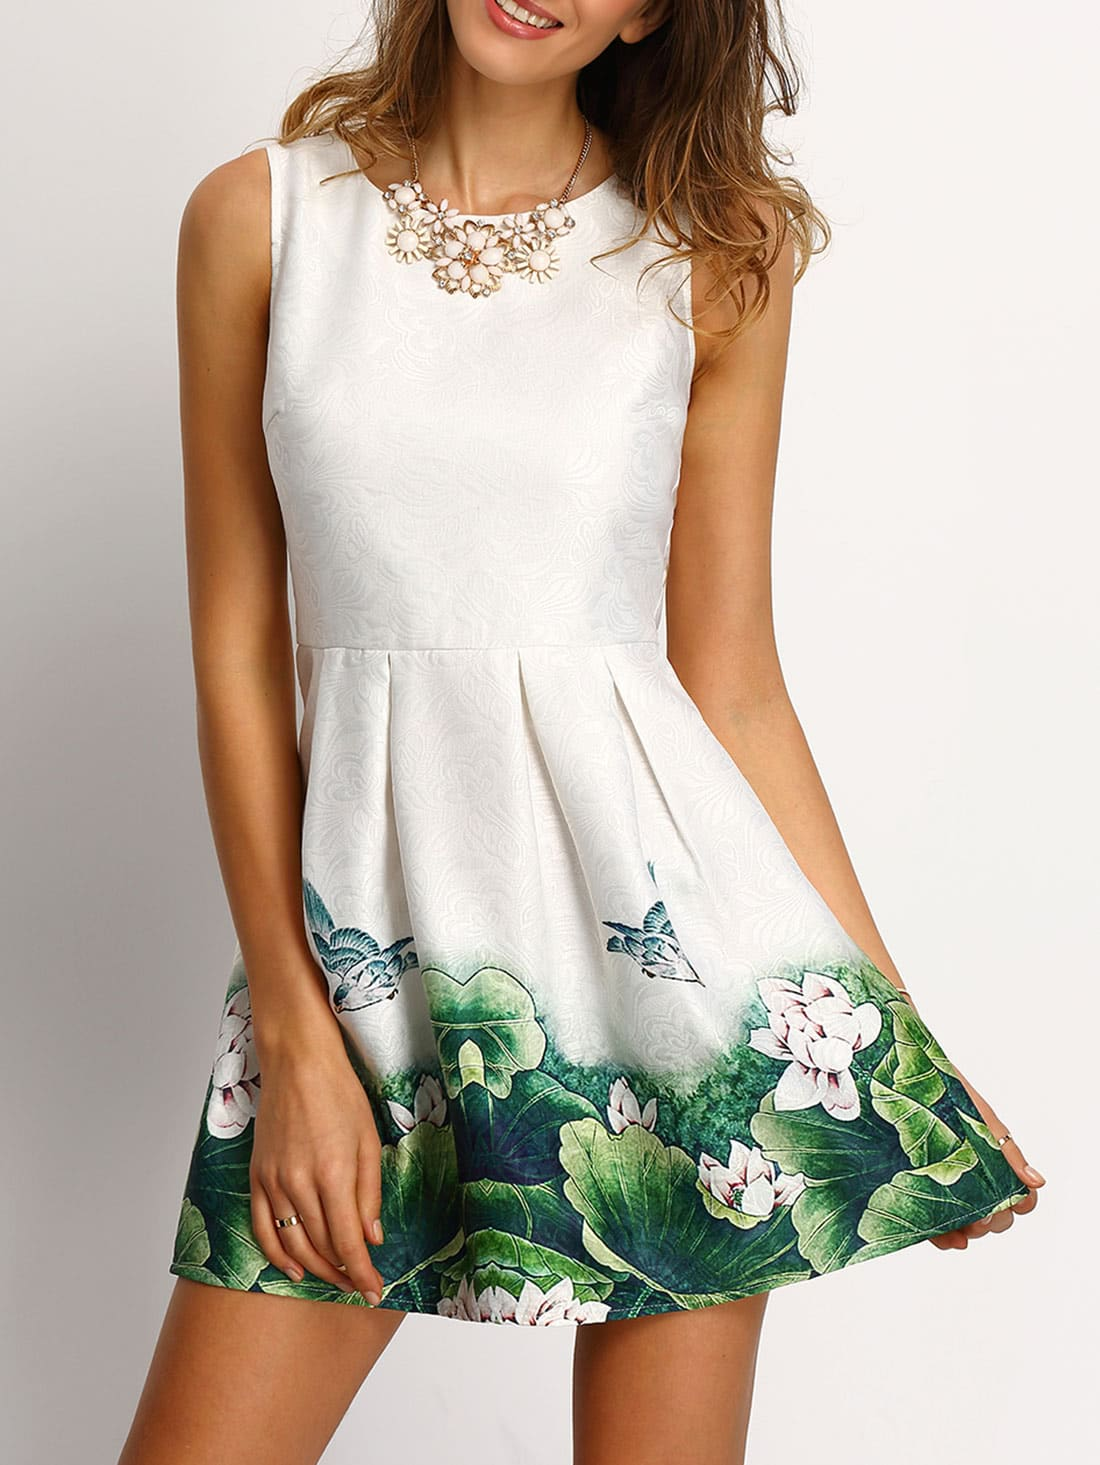 White Floral Frint Pleated Skater DressWhite Floral Frint Pleated Skater Dress<br><br>color: White<br>size: L,M,S,XS